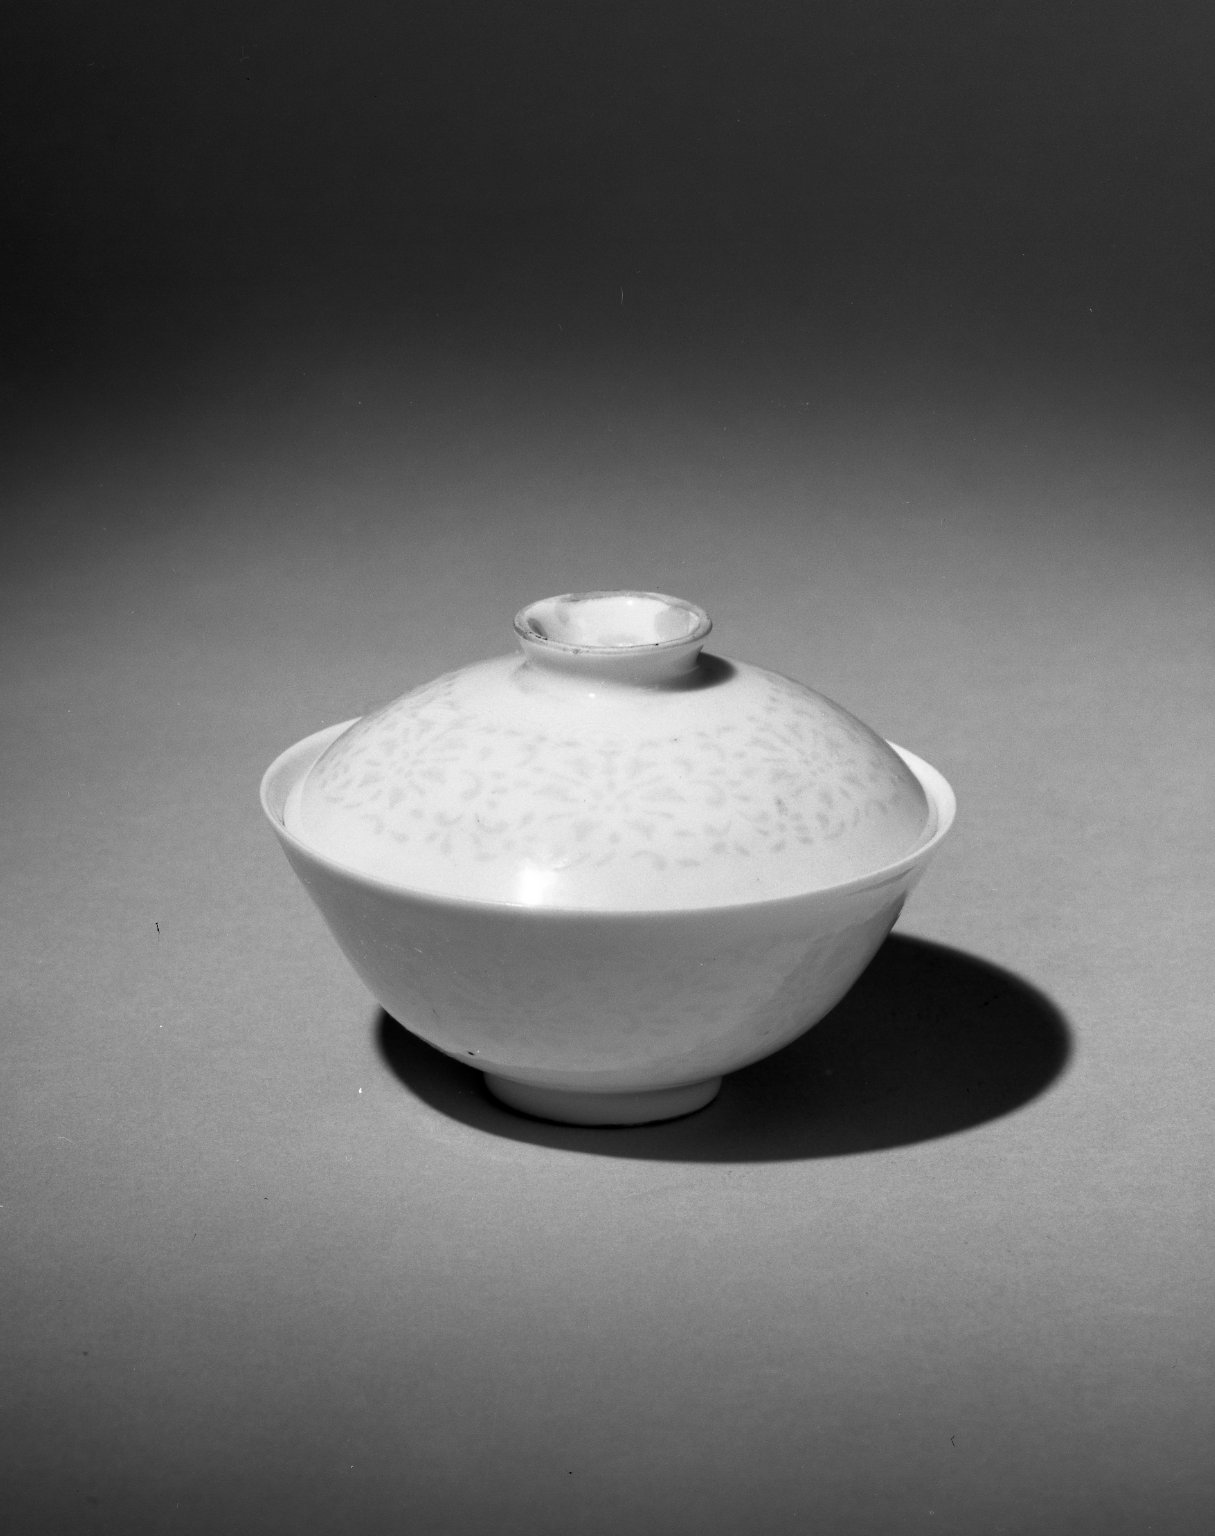 Brooklyn Museum: Bowl and Cover